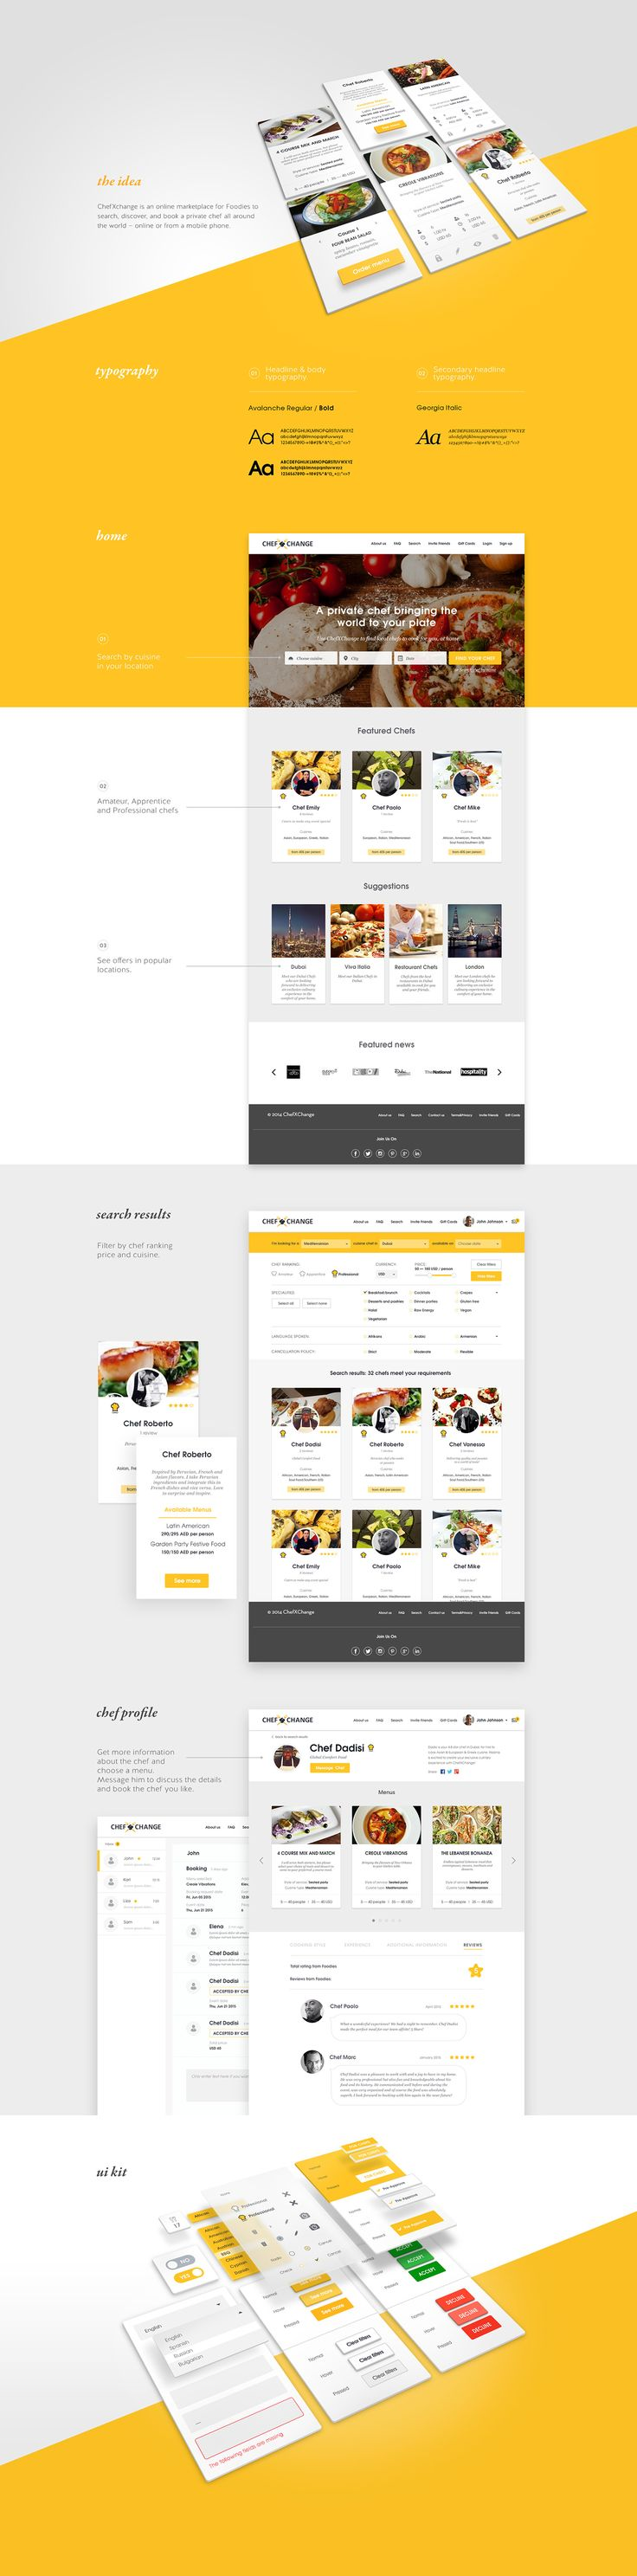 Chef booking Application & Website design on Behance